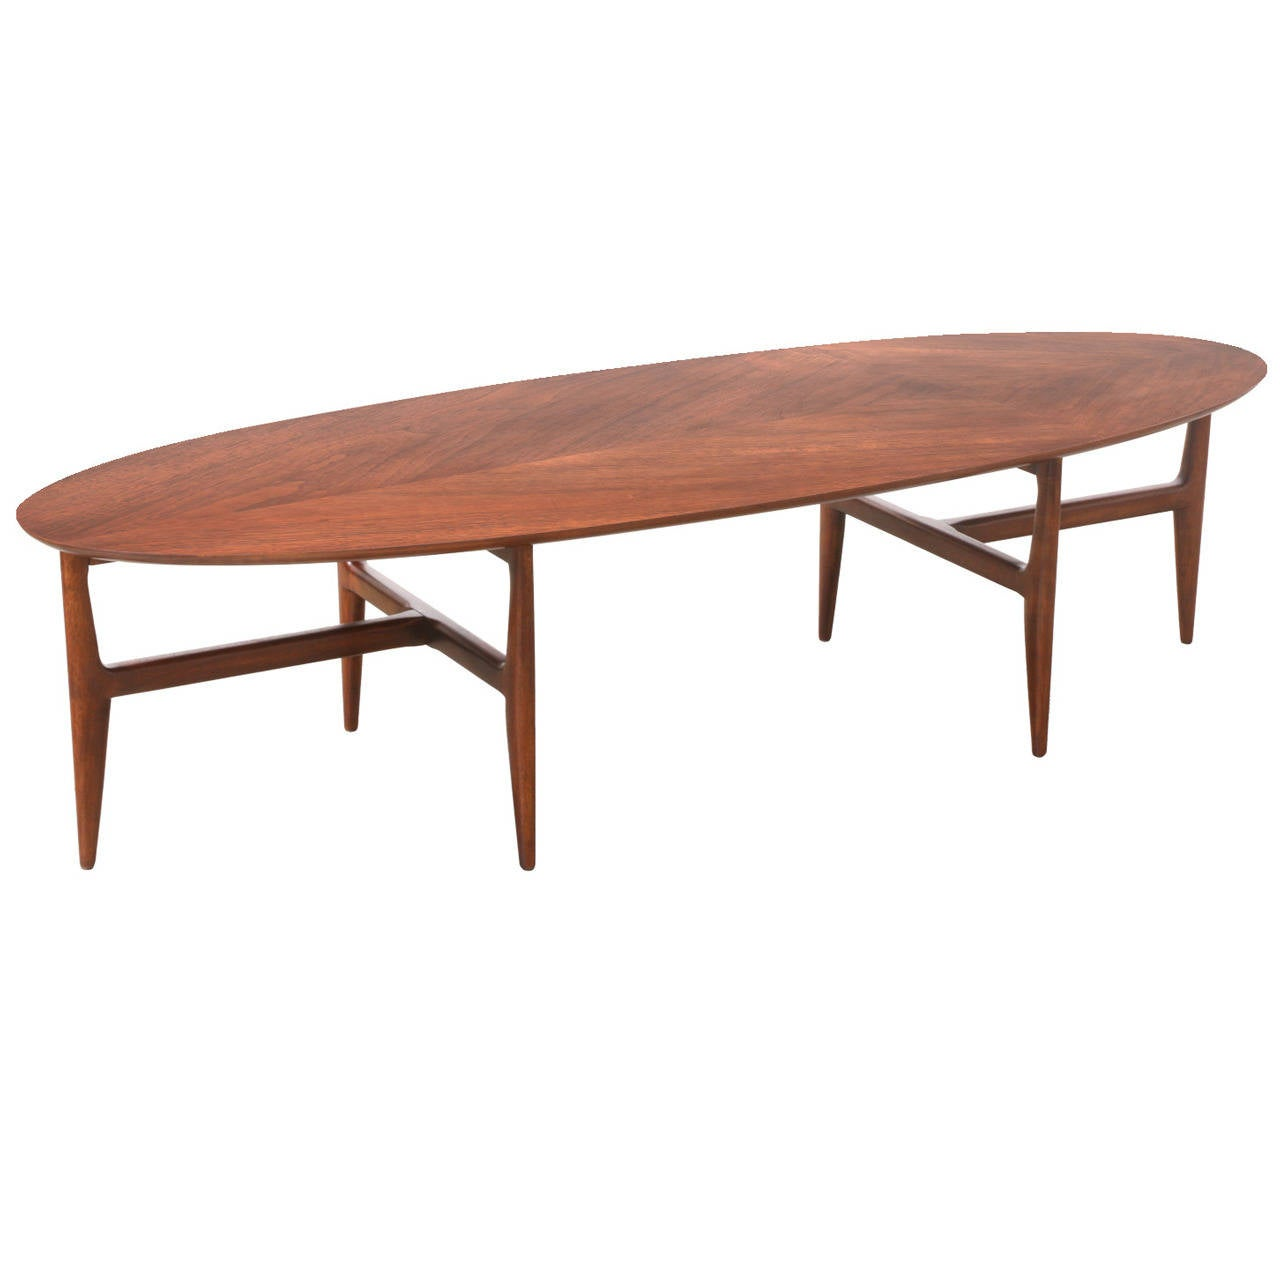 Mid-Century Modern Walnut Surfboard Coffee Table At 1stdibs